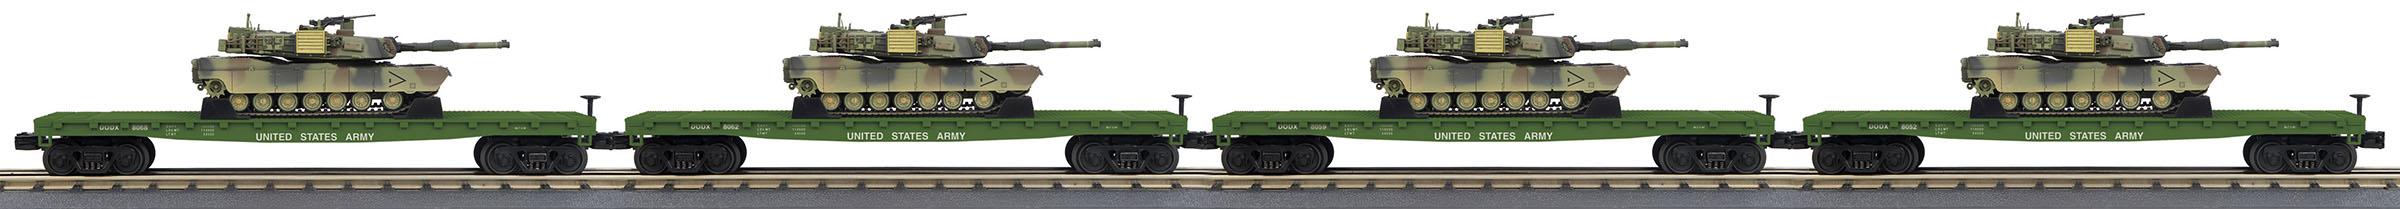 MTH307098 MTH Electric Trains O Flat w/M1A Tnk US 8052 4/ 507-307098